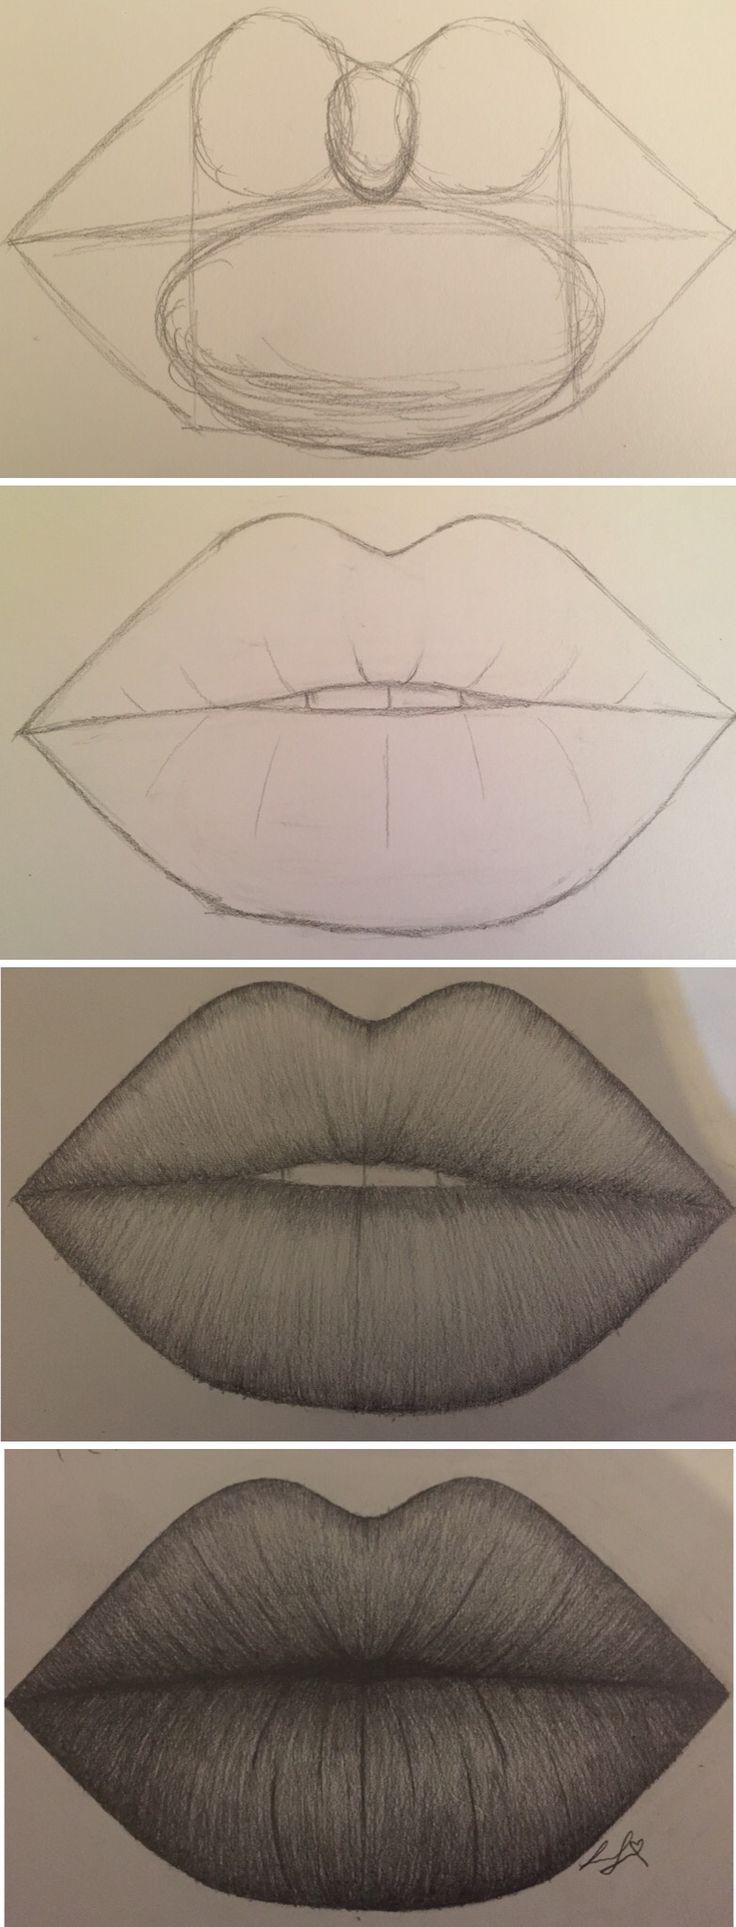 Guide Lines for lips by Larissa Junghans